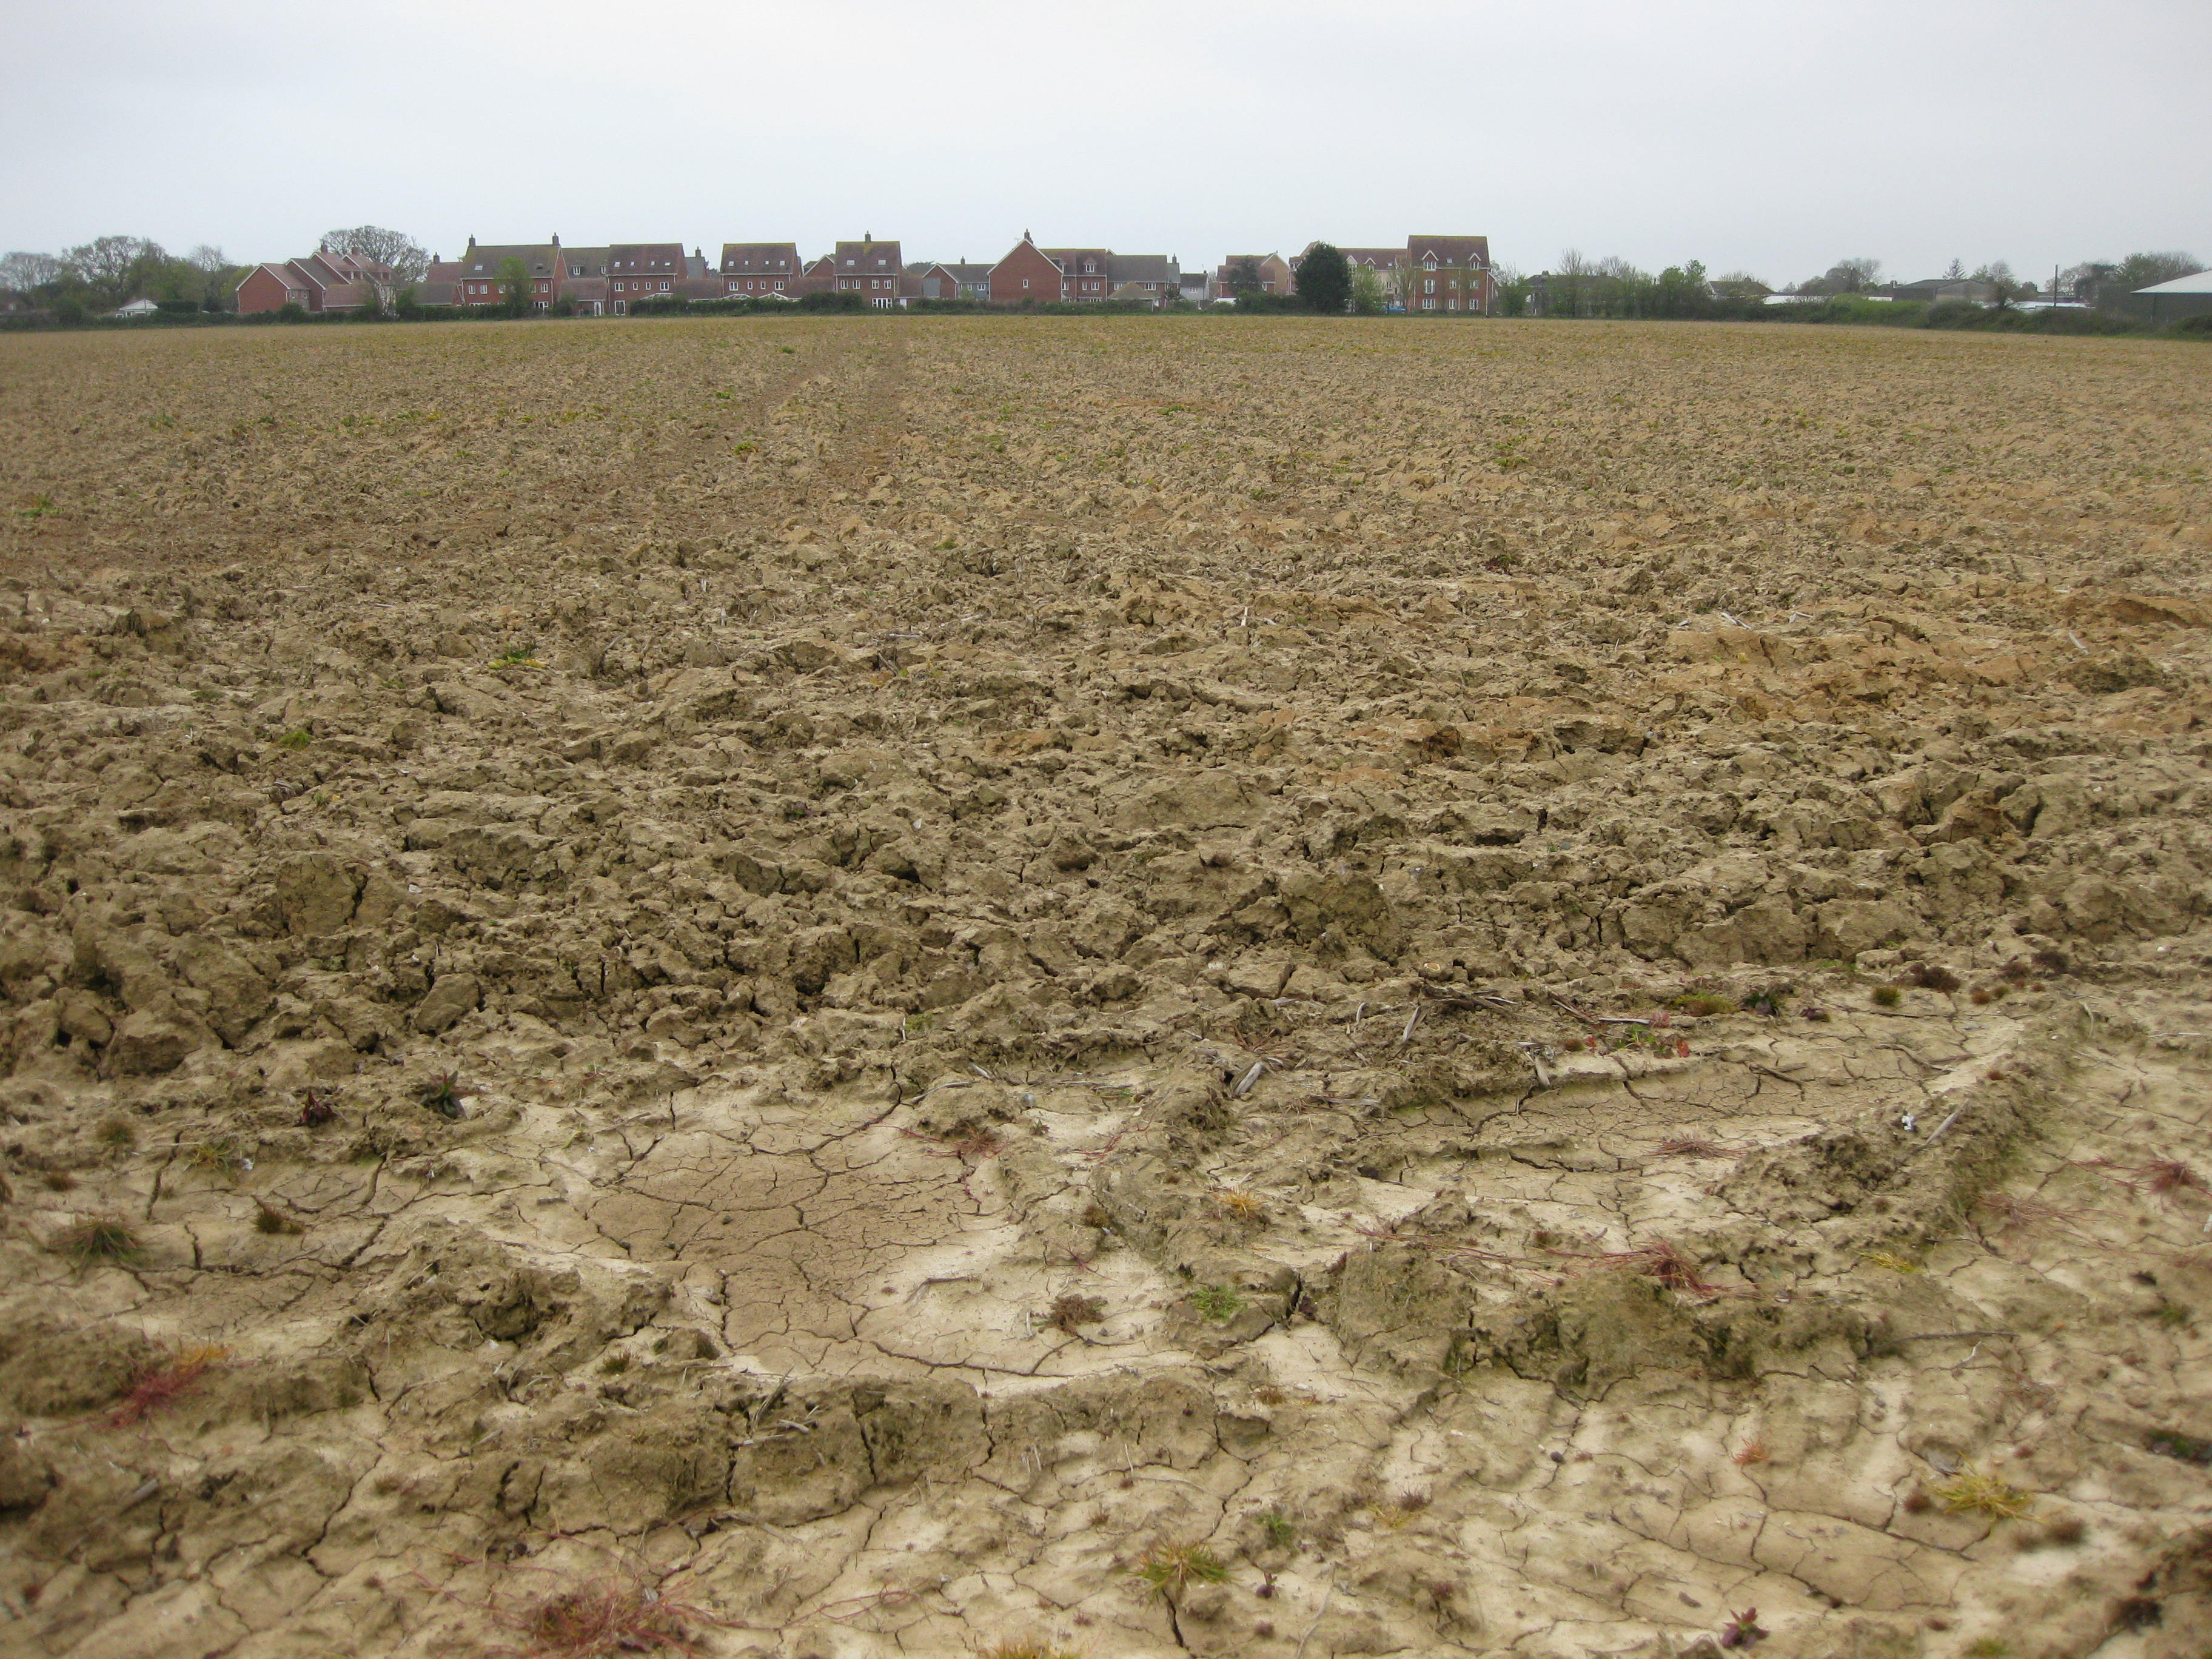 Existing arable